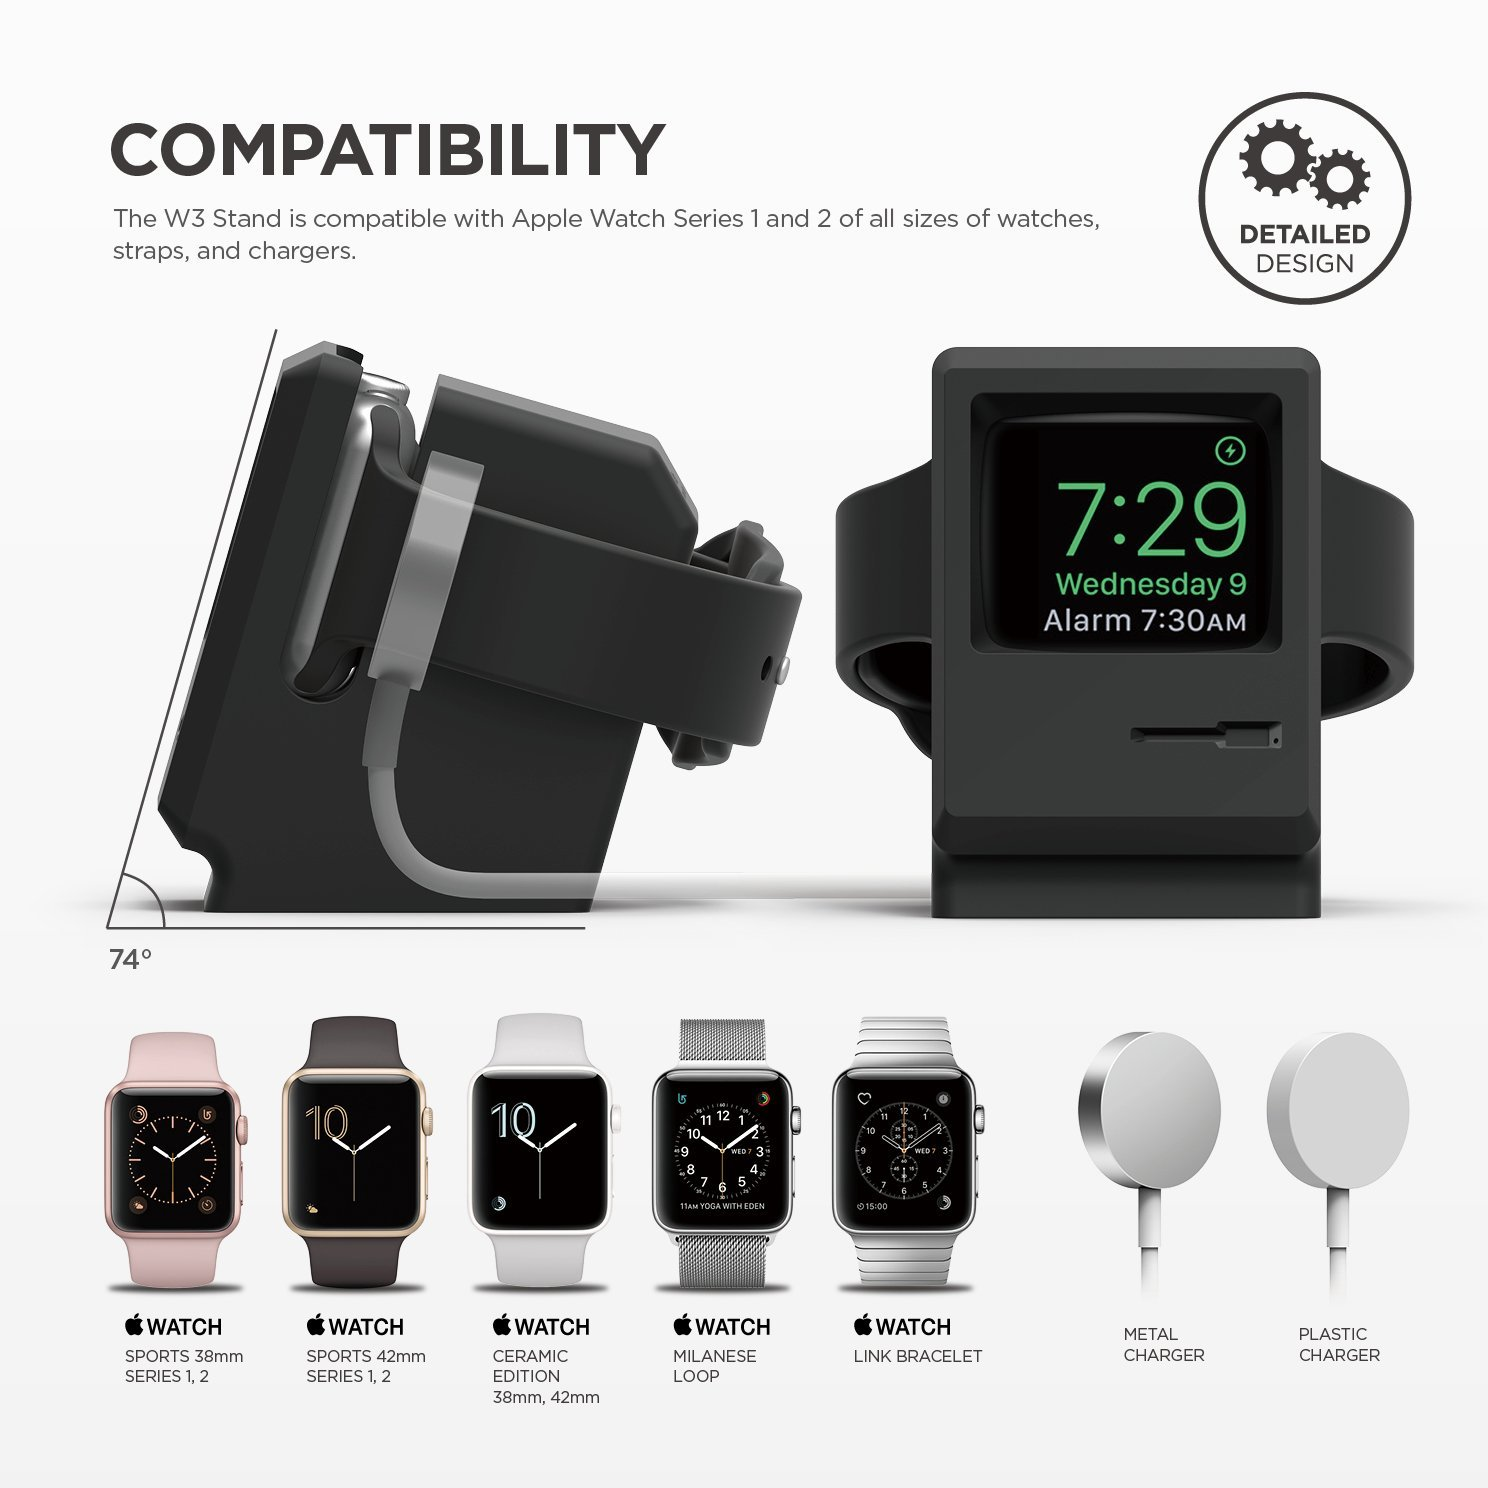 The Elago W3 Stand for Apple Watch is the perfect nightstand for your Apple Watch. The stand gives your Apple Watch the appearance of a classic 1984 Macintosh computer, but in Miniature. The perfect Apple Watch charger and bedside alarm clock in one!